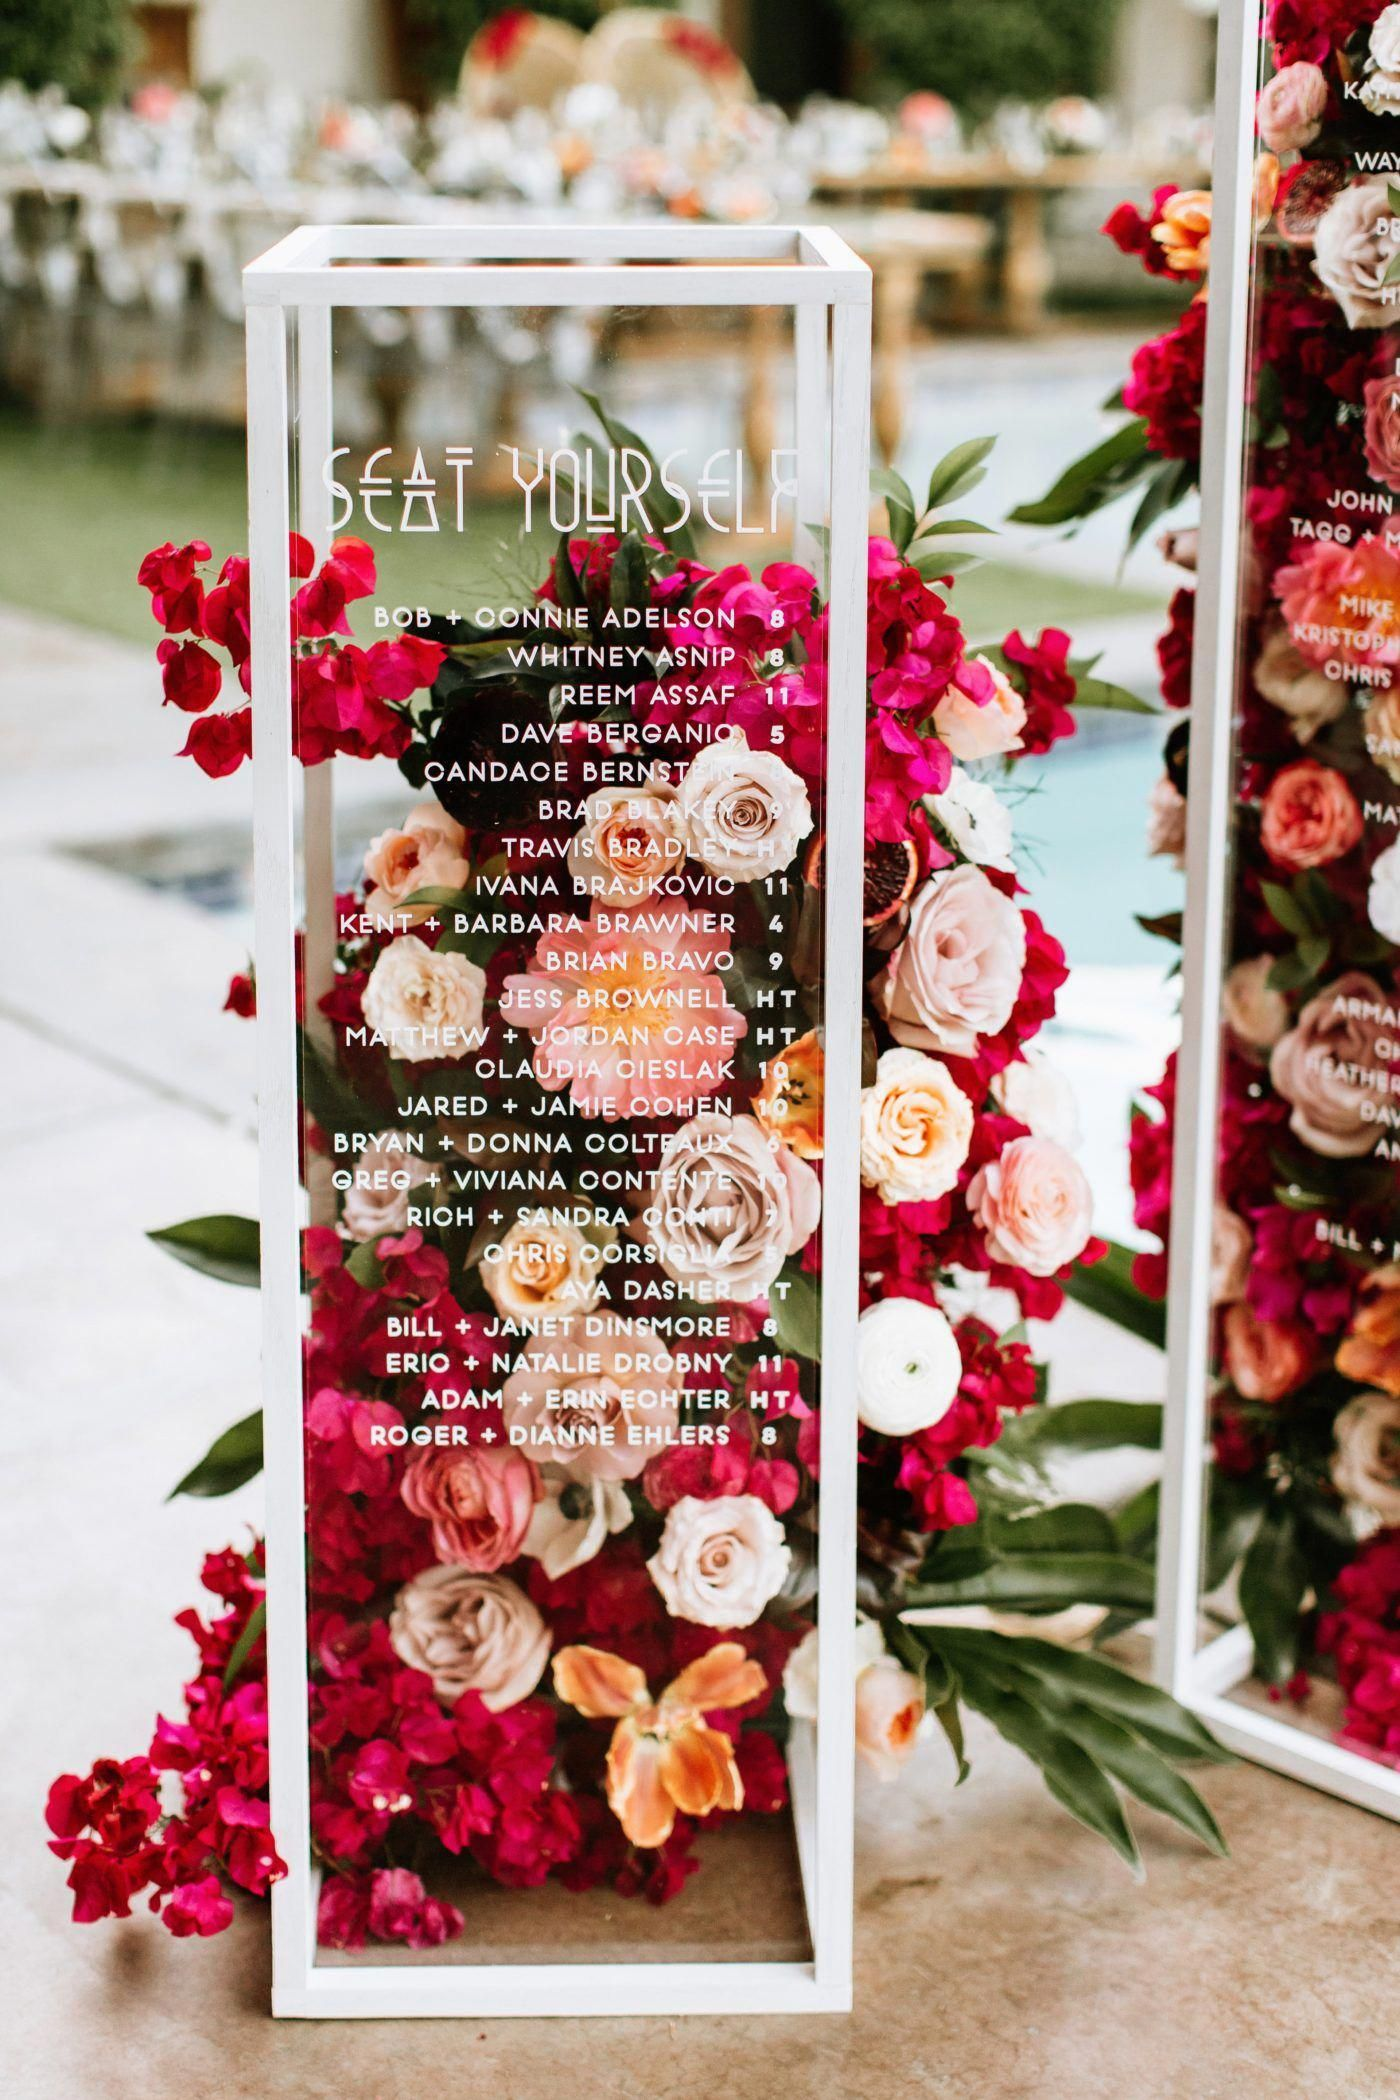 Conscientious Generated Wedding Inspirations Embed Video Seating Chart Wedding Wedding Table Plan Wedding Floral Centerpieces